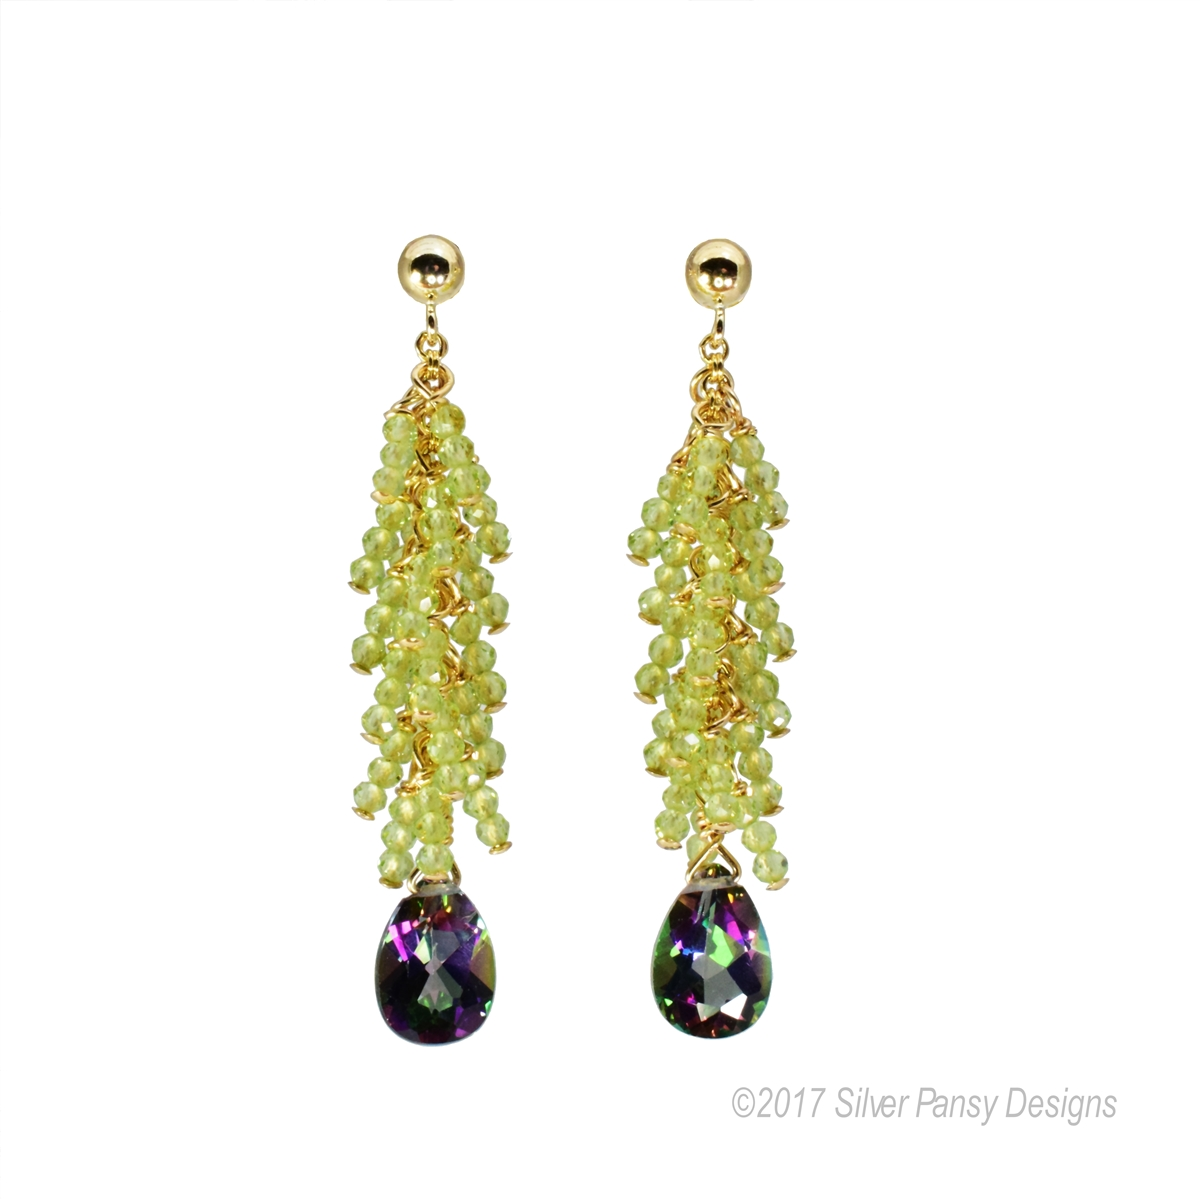 Beautiful Hand Crafted Drop Earrings Green Peridot Gemstones Create A Feather Affect Above The